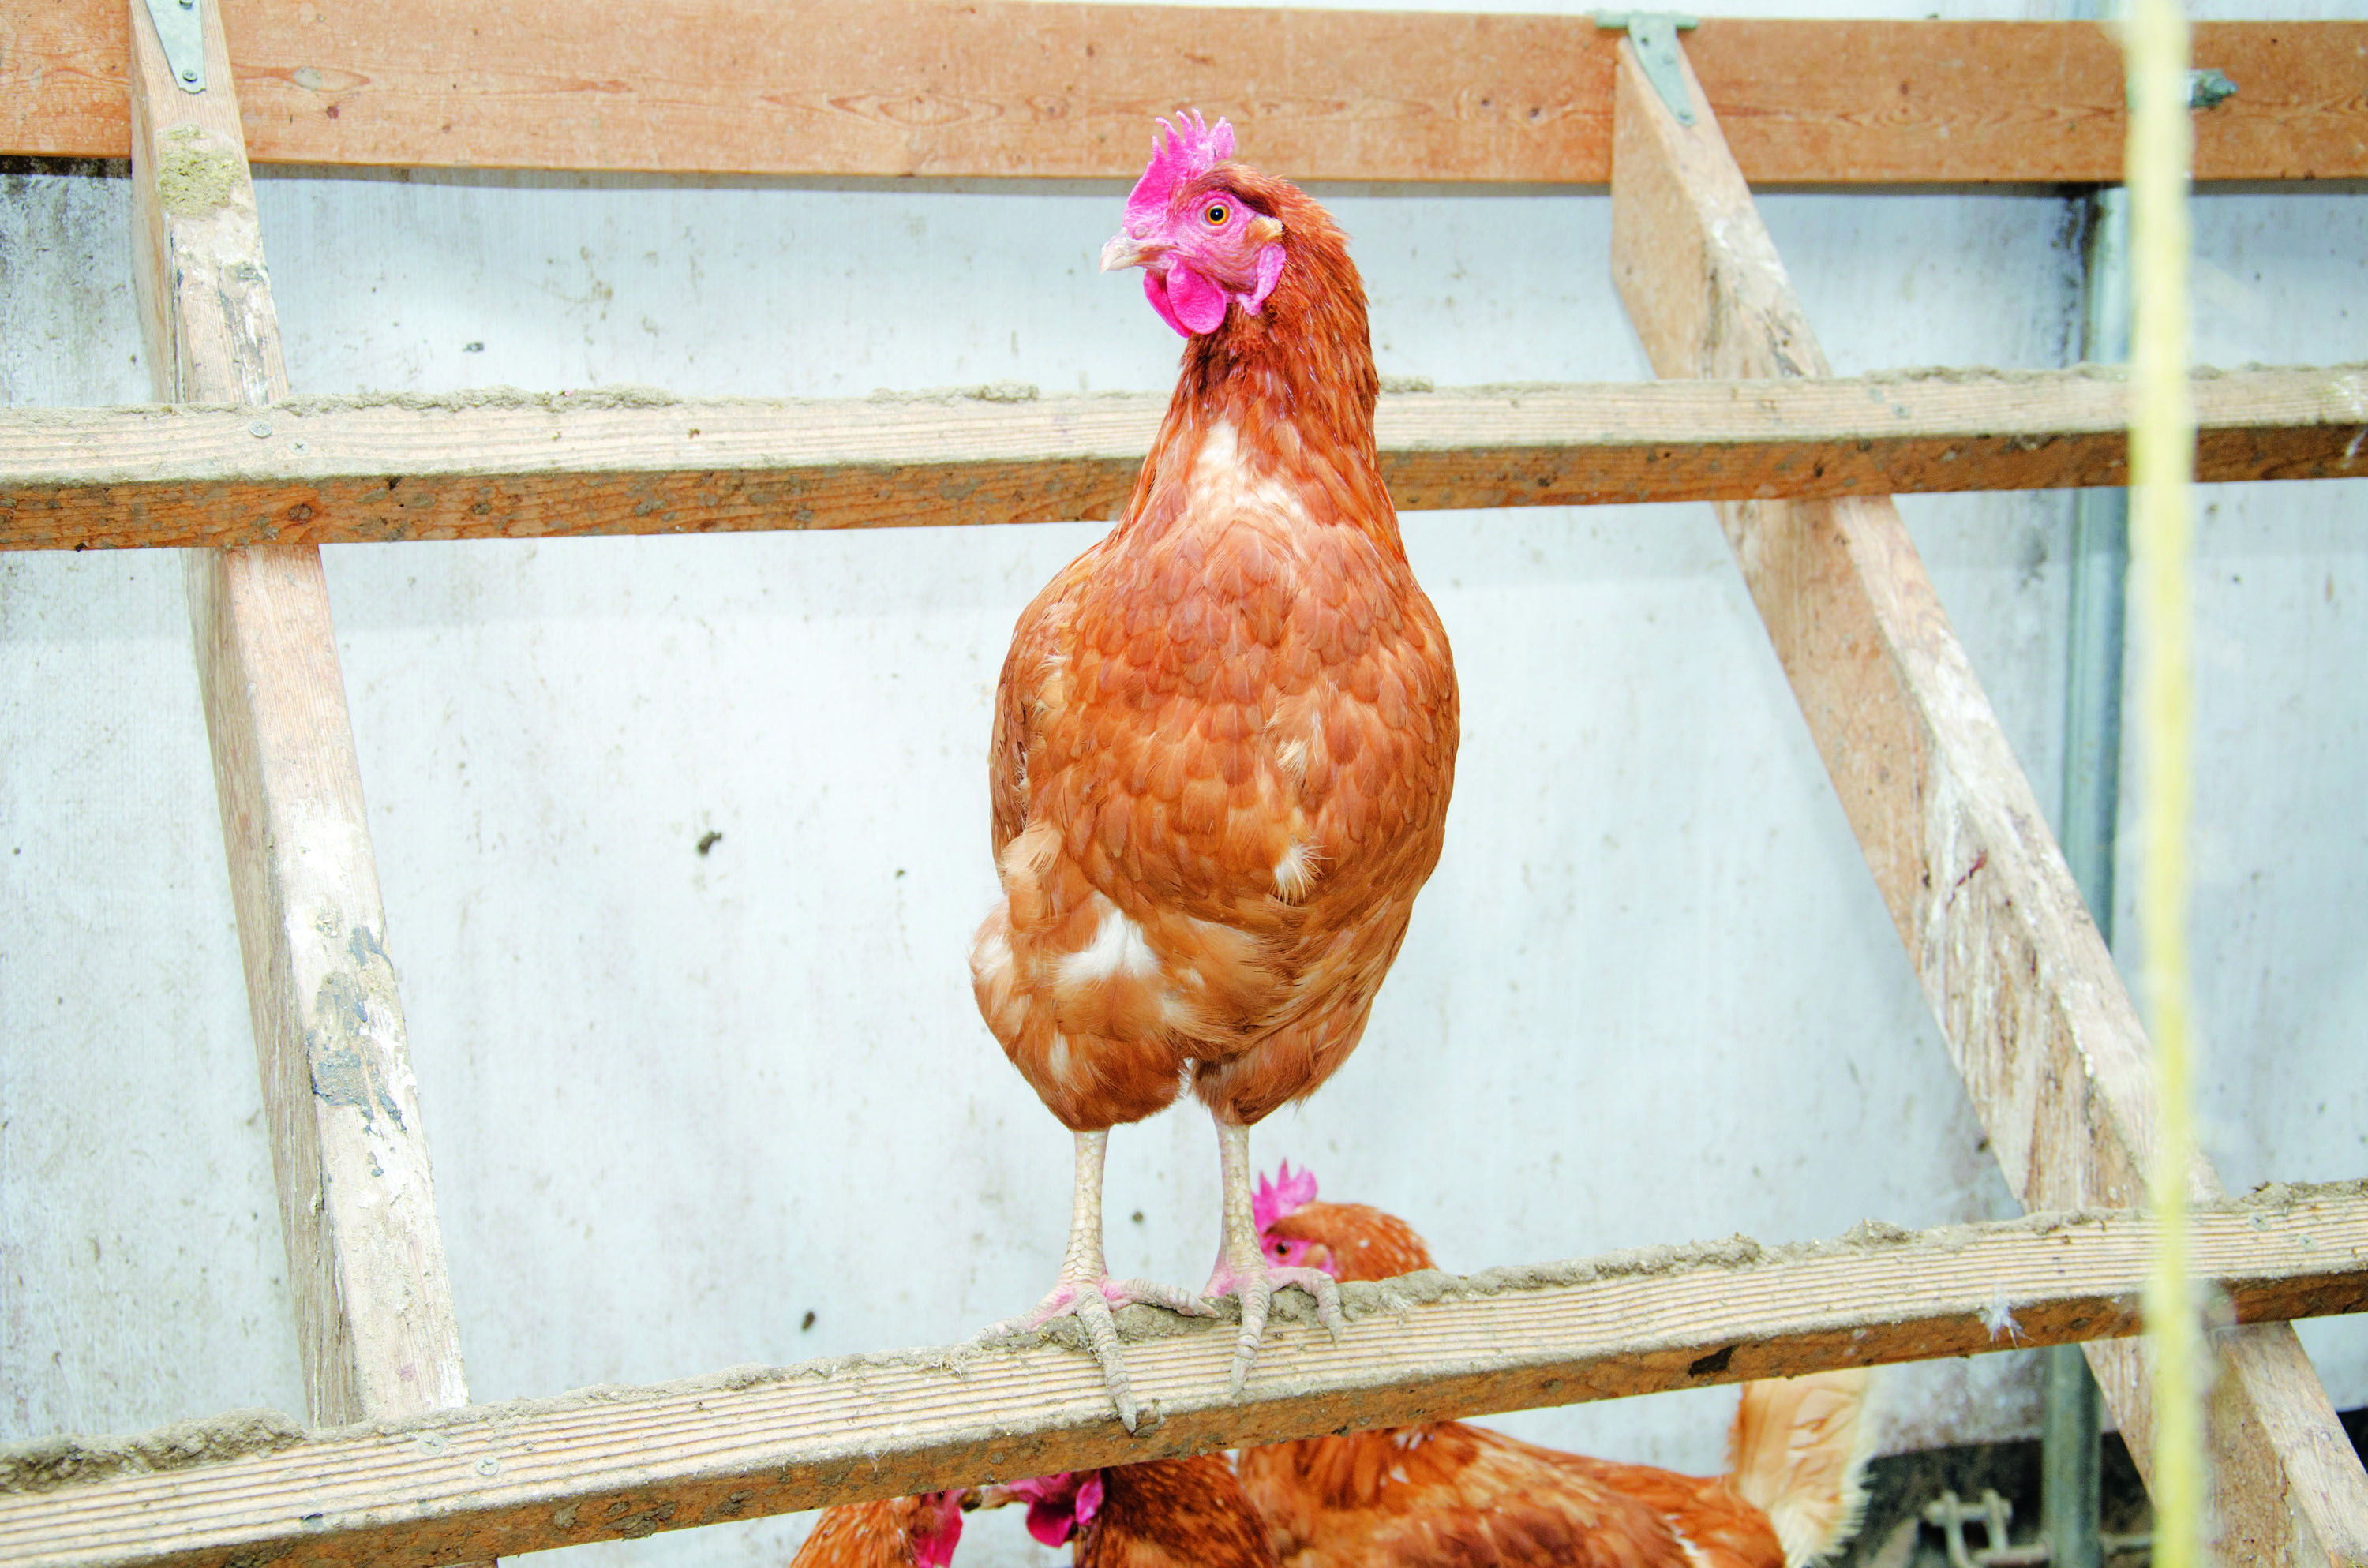 Choosing the right home for your chickens - perch for henhouse